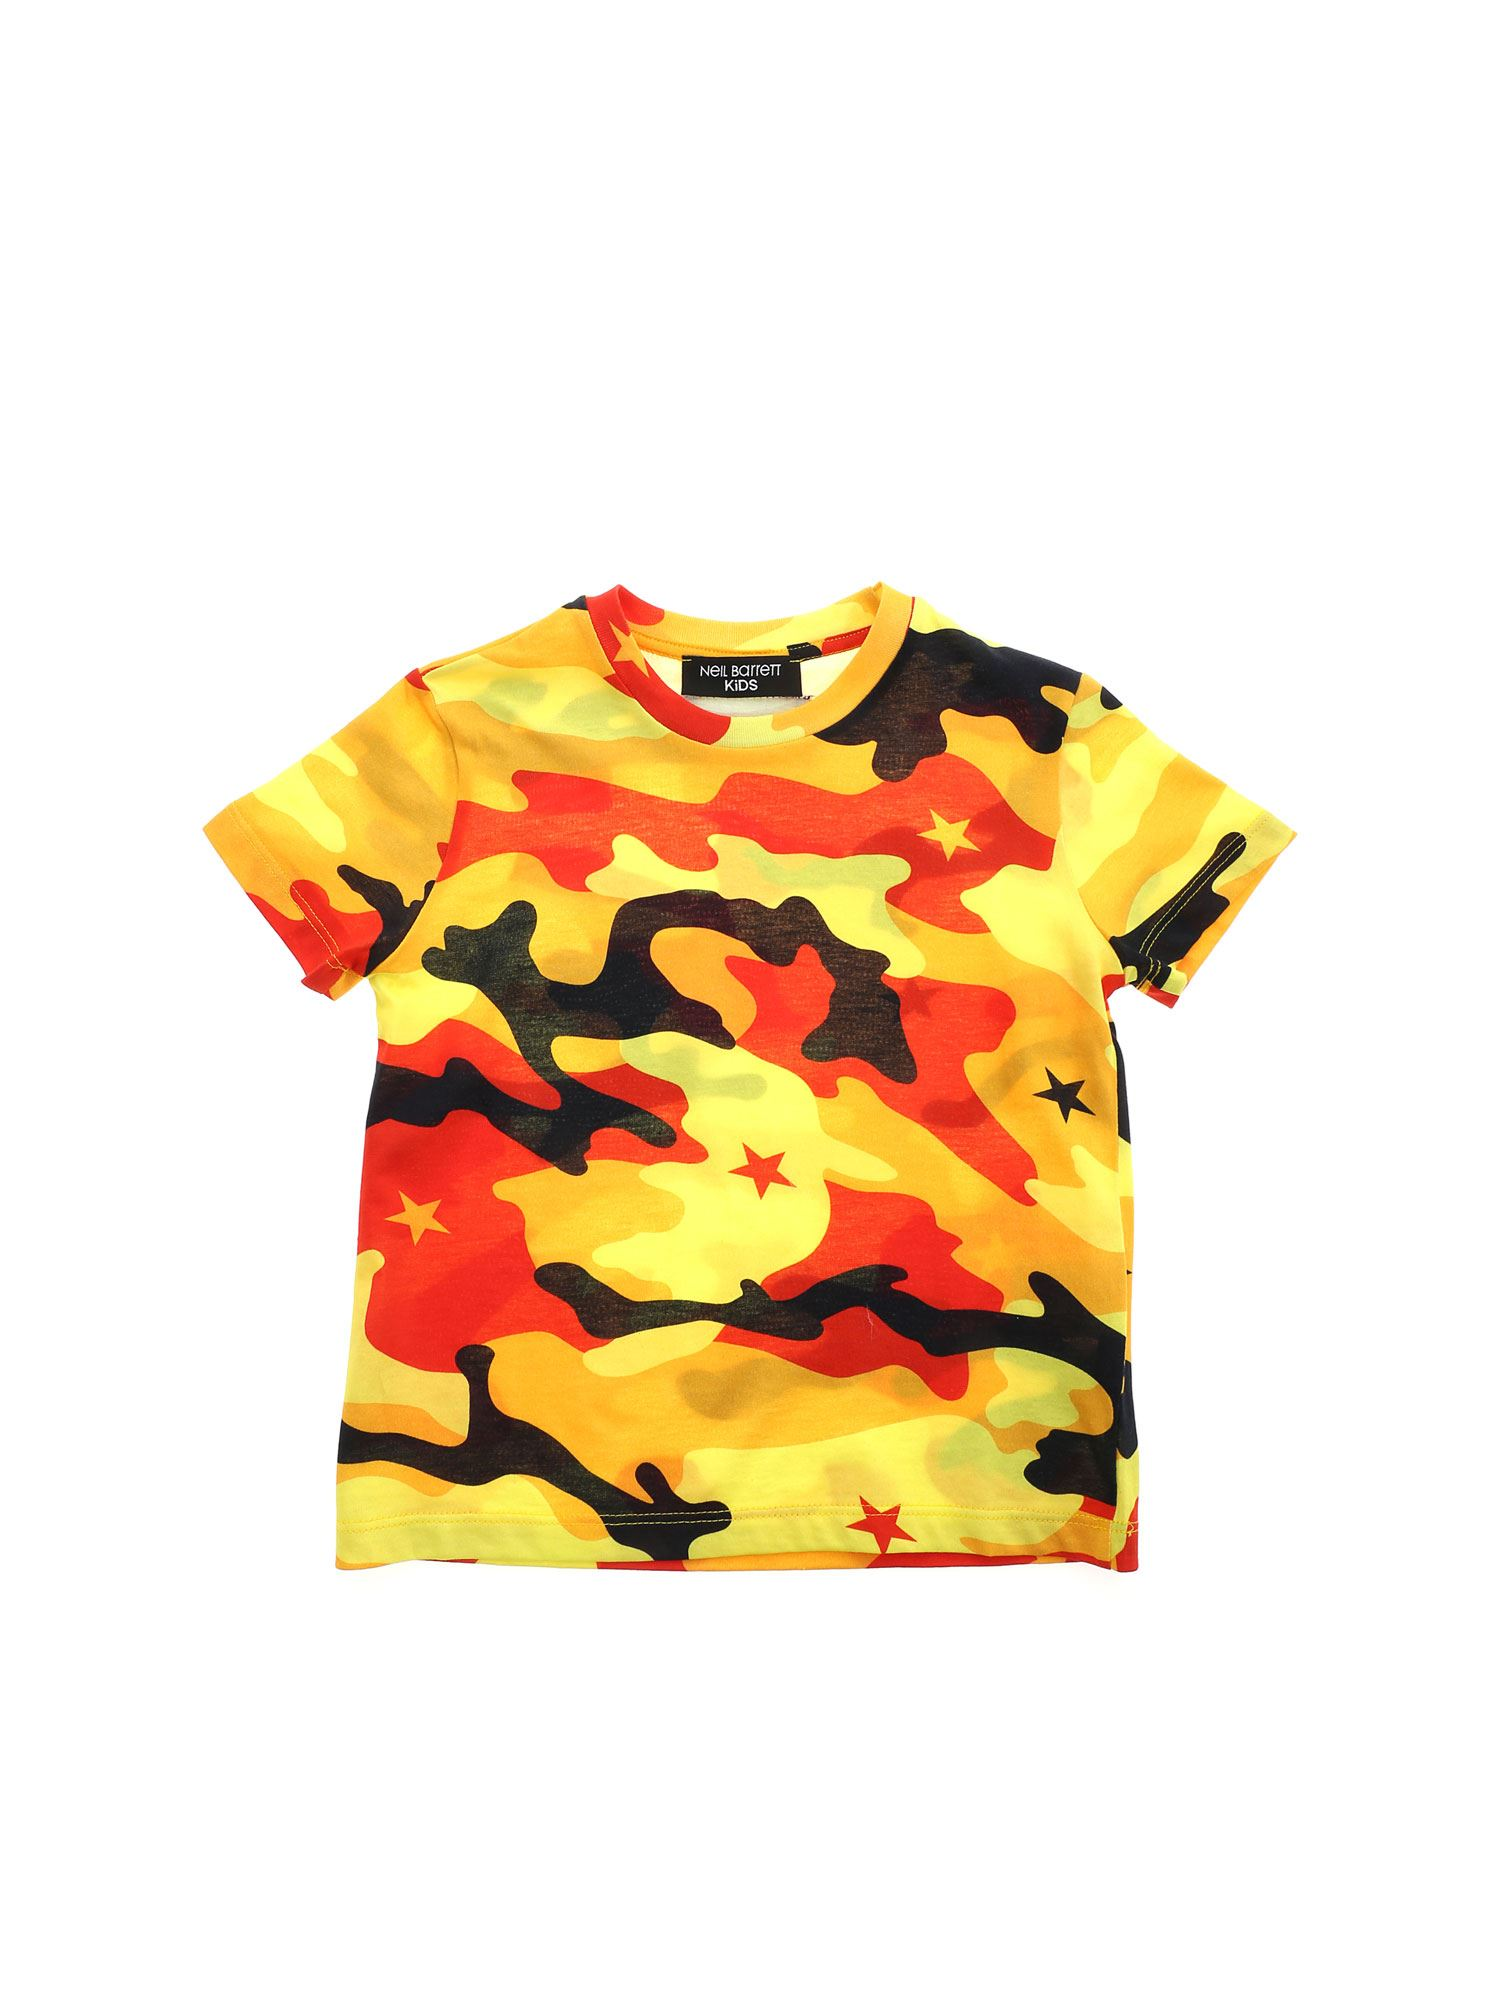 Neil Barrett T-SHIRT IN SHADES OF YELLOW